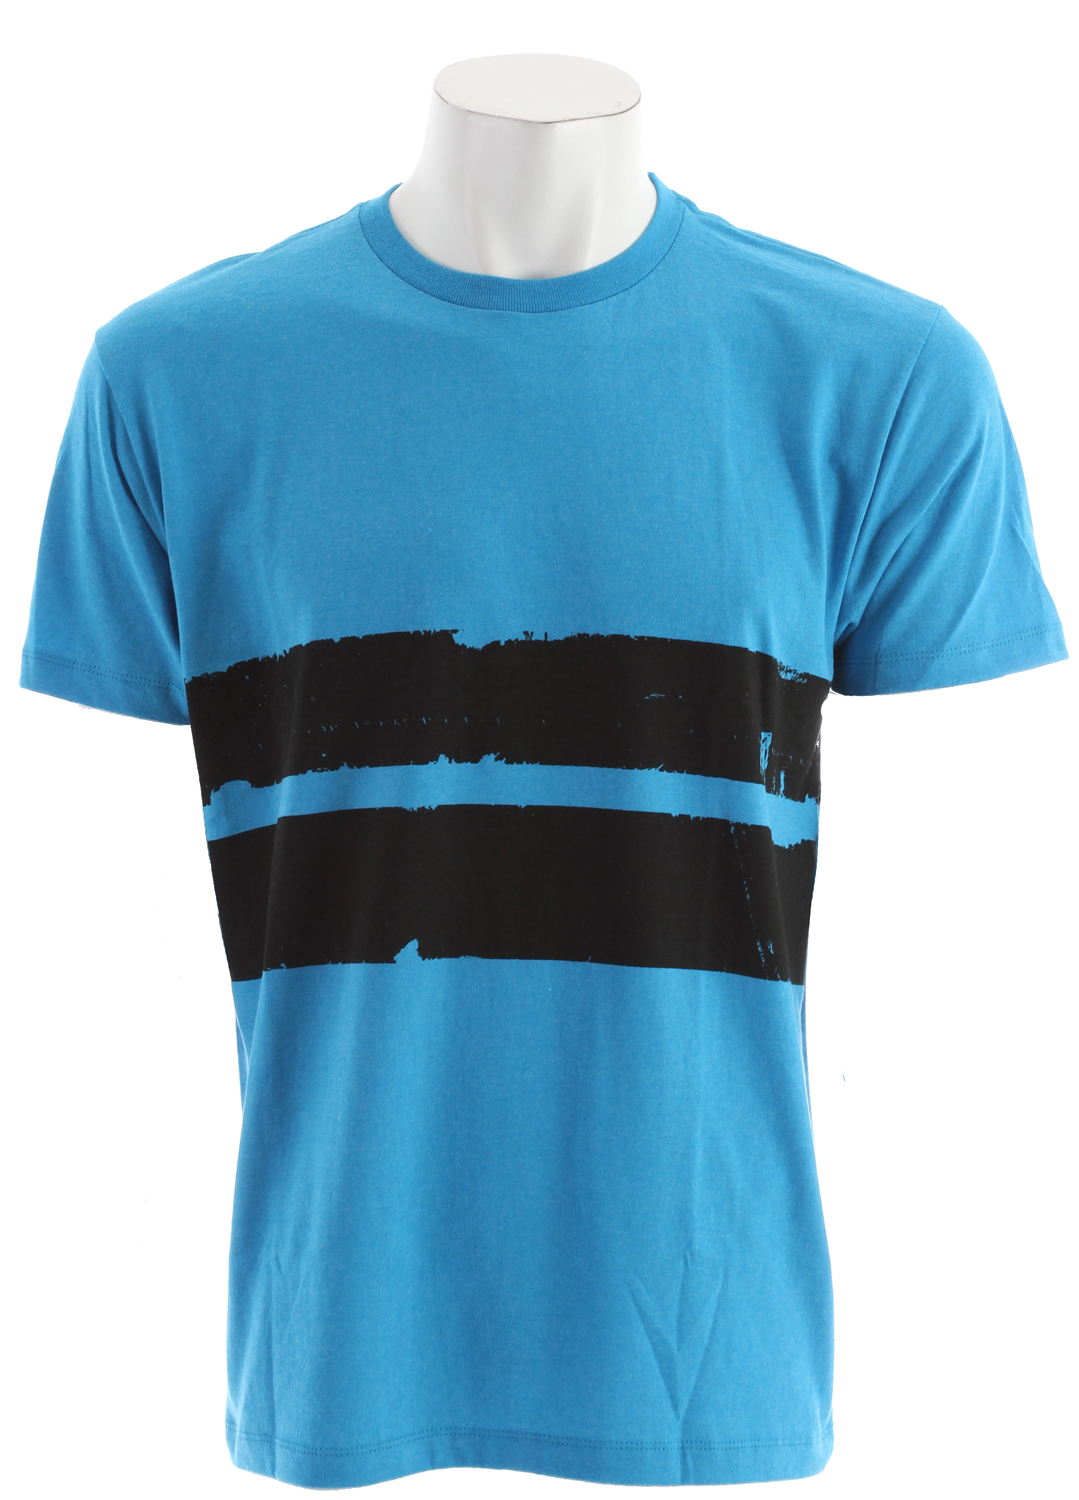 Surf Key Features of the Volcom Electro Stripe T-Shirt: Basic Screenprint Basic Fit 60% cotton/40% polyester - $12.95